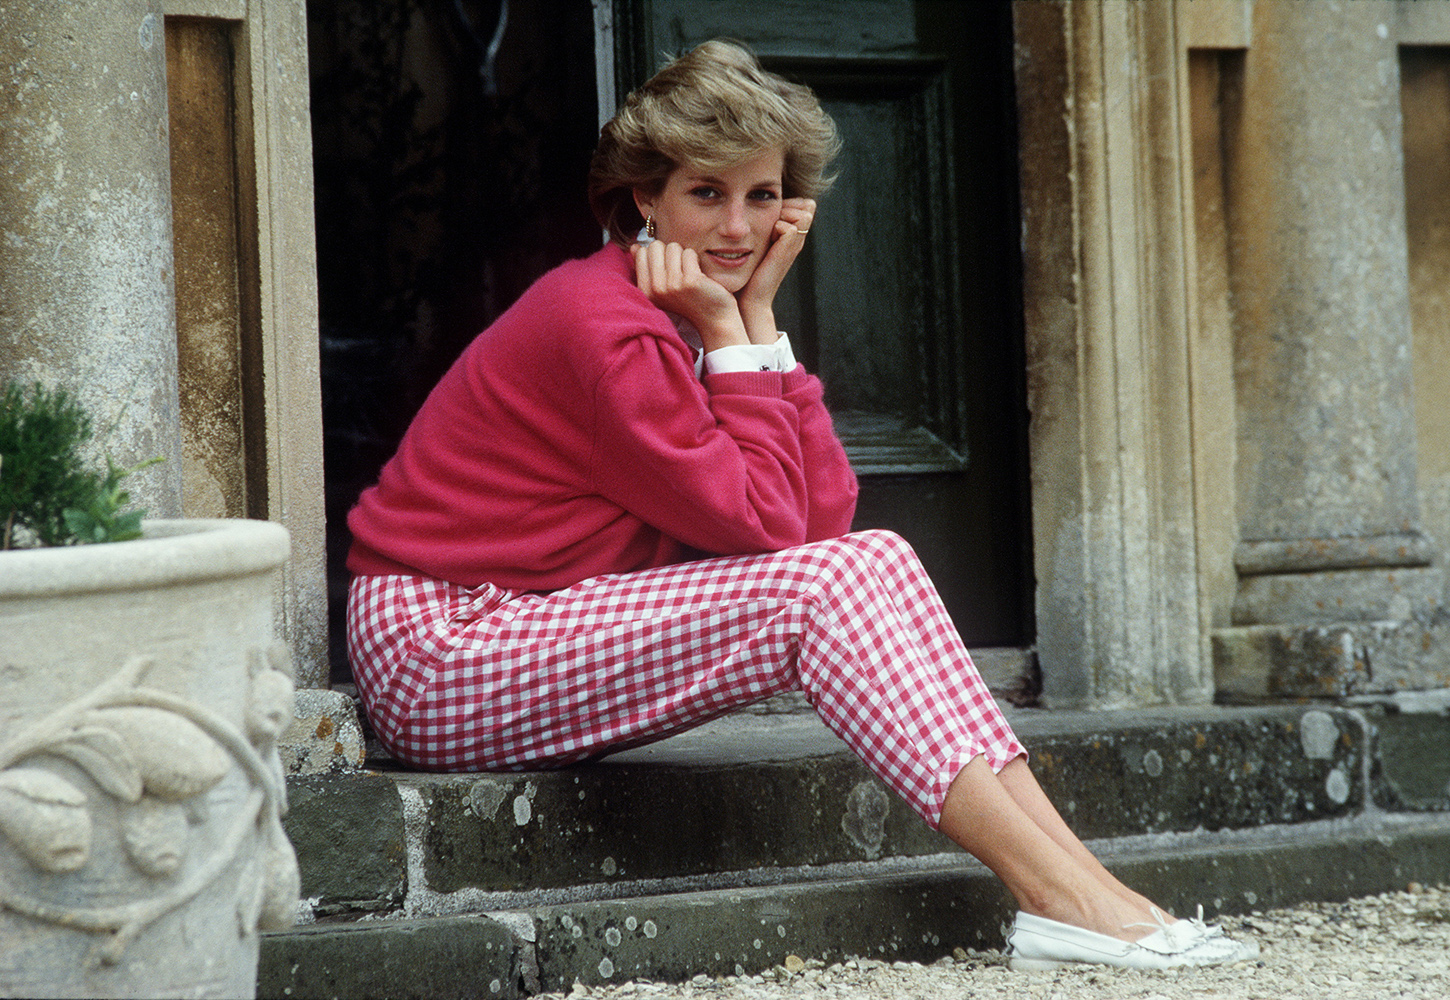 Princess Diana Resting Her Head In Her Hands Whilst Sitting On The Steps Of Her Home At Highgrove, Gloucestershire.  (Photo by Tim Graham/Getty Images)